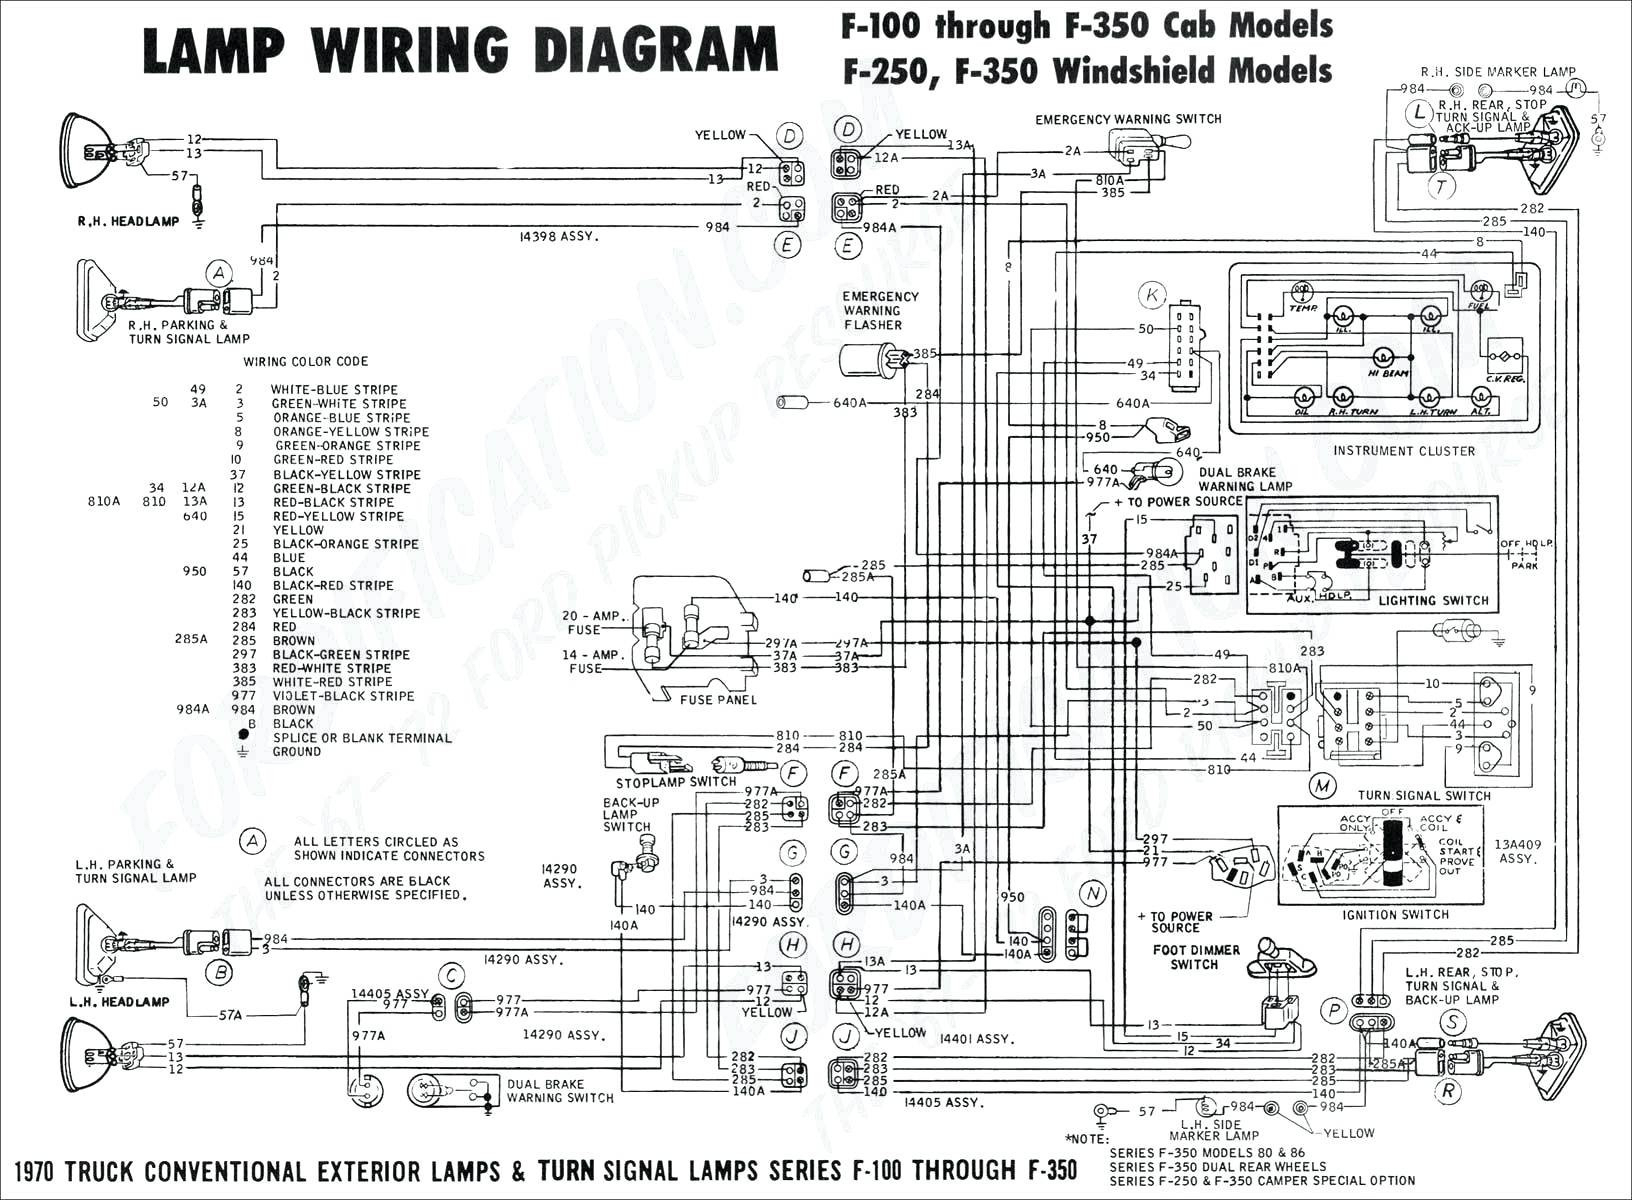 2005 Ford F 250 Wiring Diagram - Wiring Diagrams Thumbs - 08 F250 Trailer Wiring Diagram